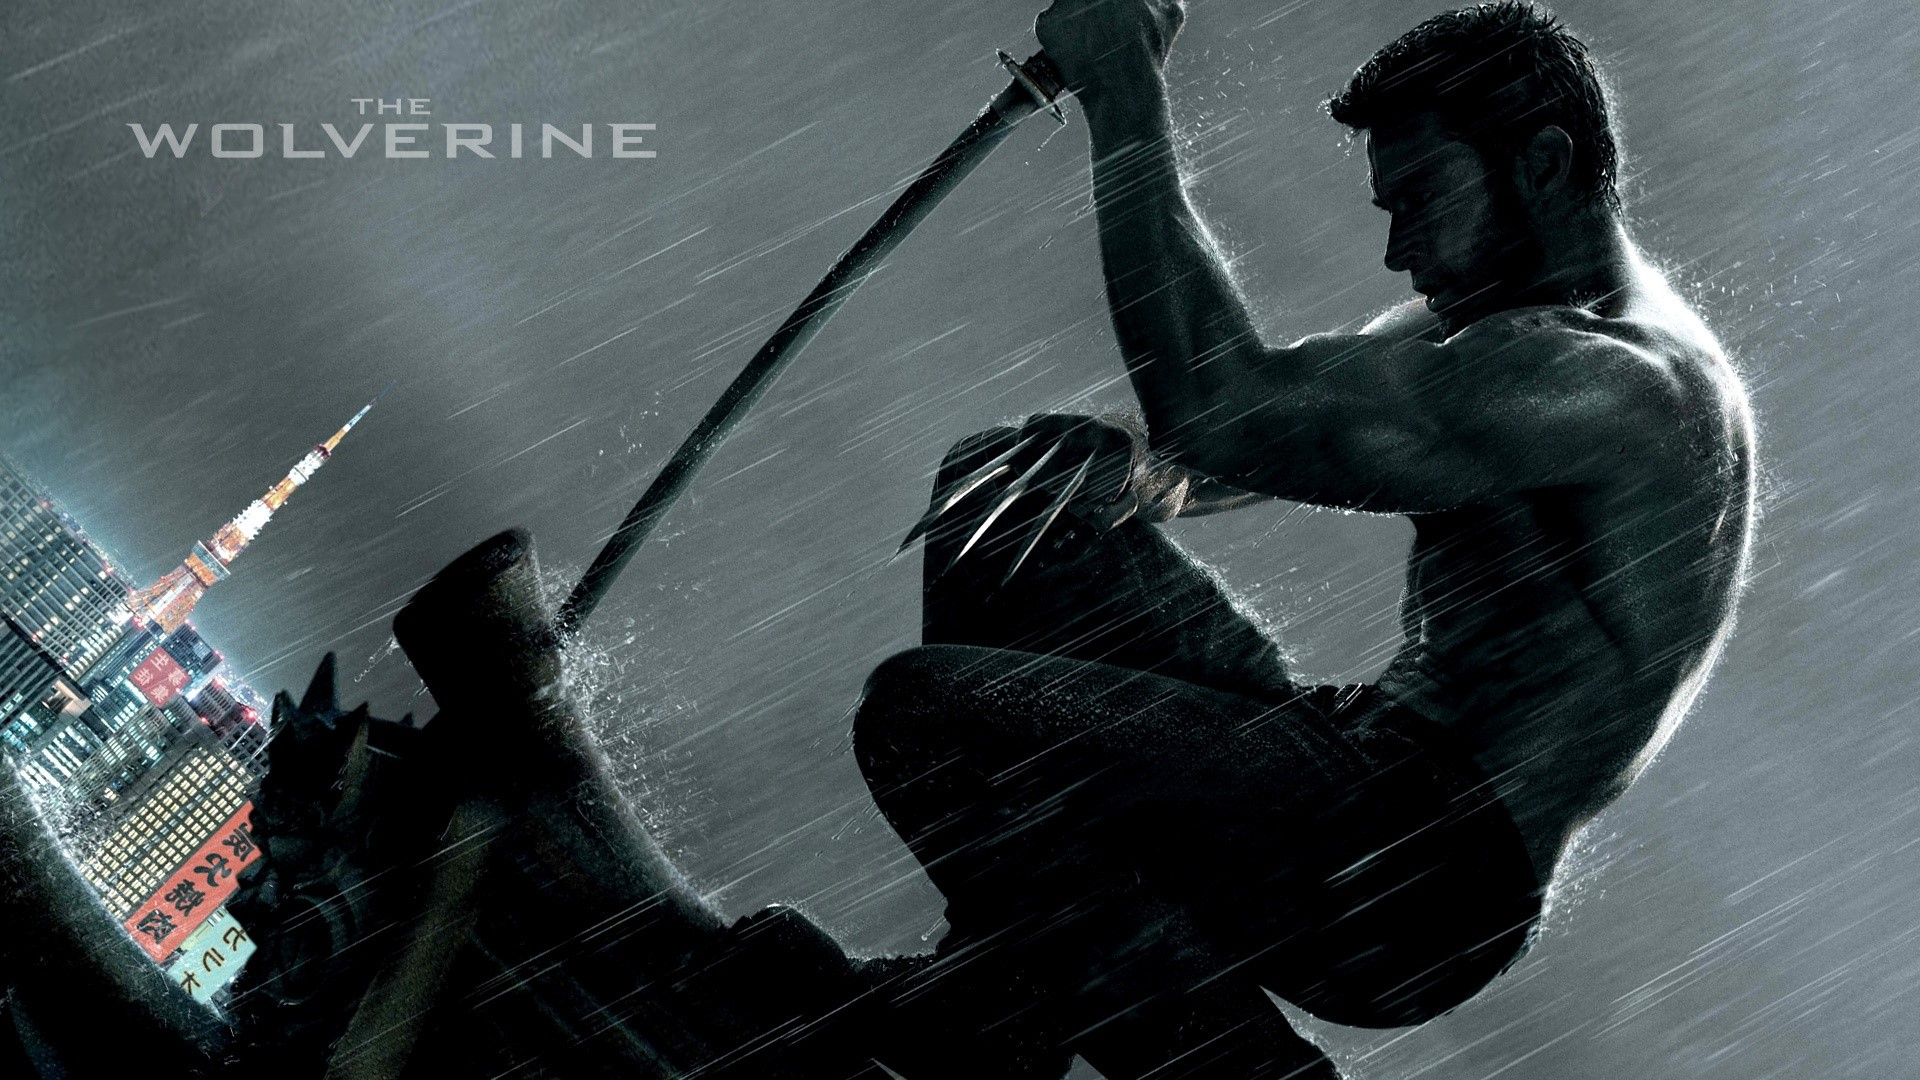 Wallpaper Hugh Jackman in Wolverine